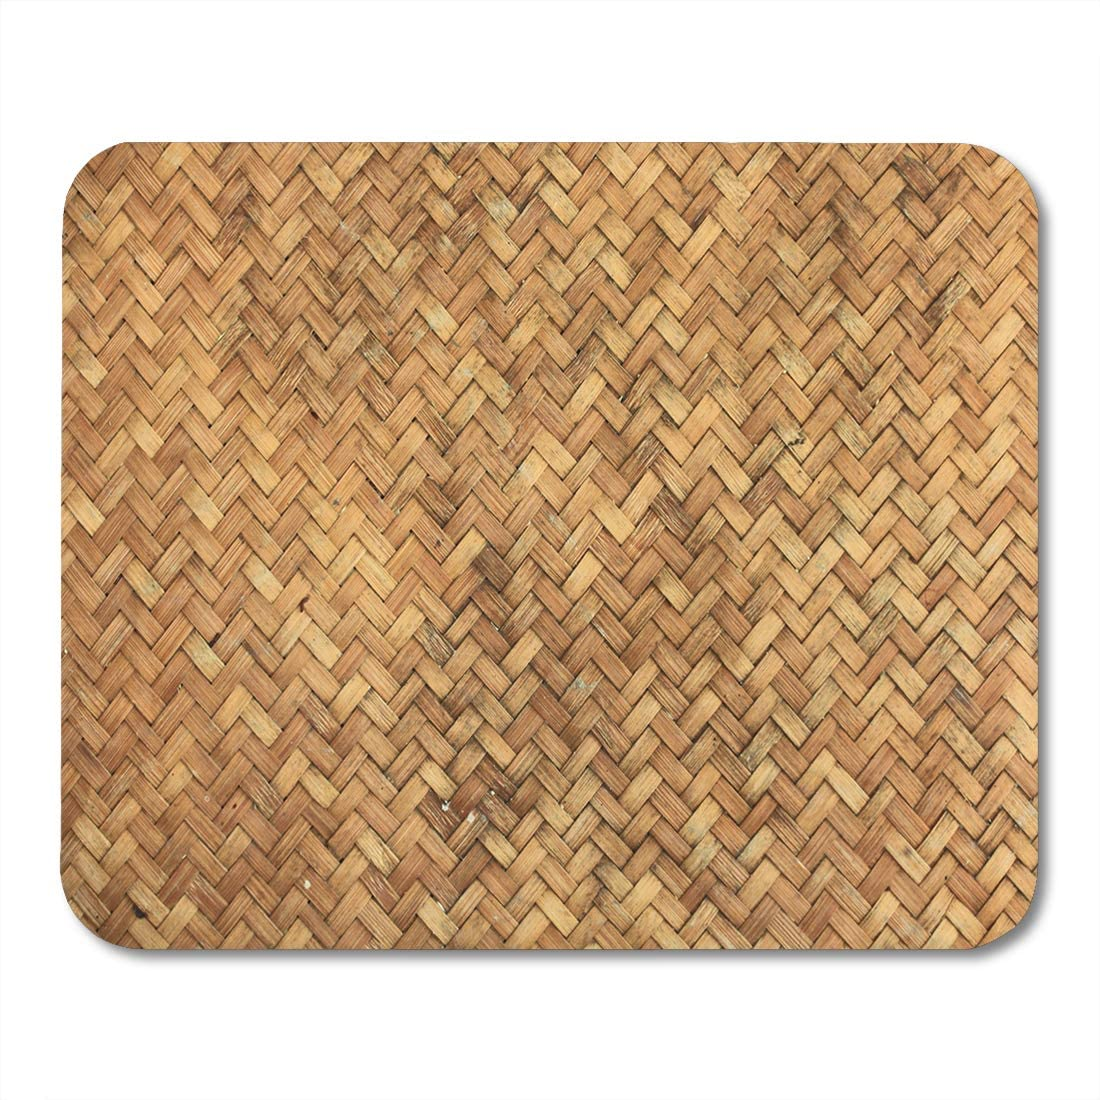 Desktop Computers mats 9.5 x 7.9 Office Supplies Emvency Mouse Pads Pattern Brown Basket Bamboo Woven Chinese Rustic Straw Wooden Mouse Pad for notebooks